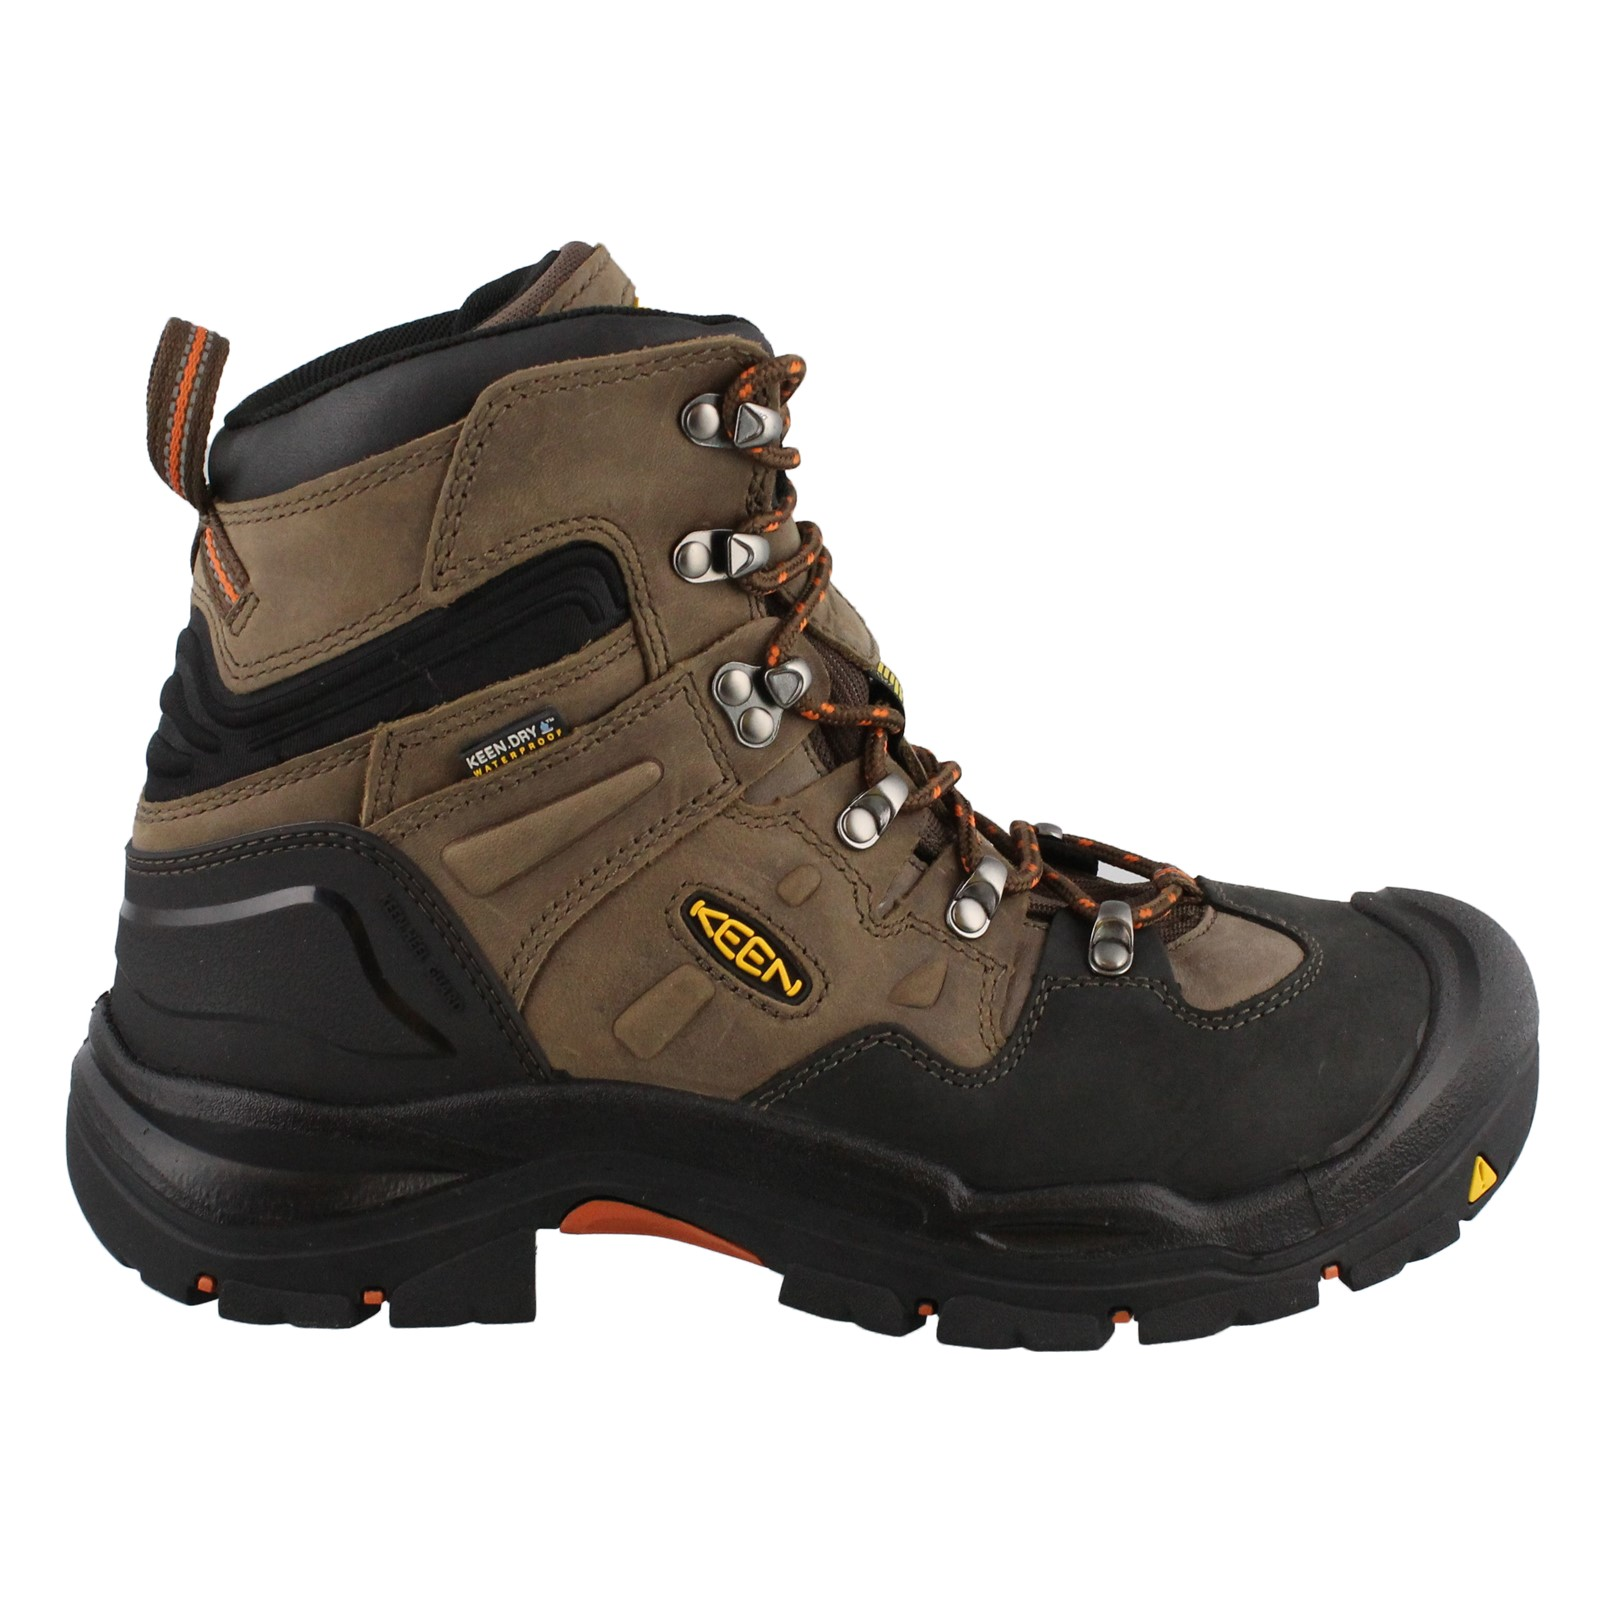 Men's Keen, Coburg 6 inch Waterproof Boot Steel Toe Boots